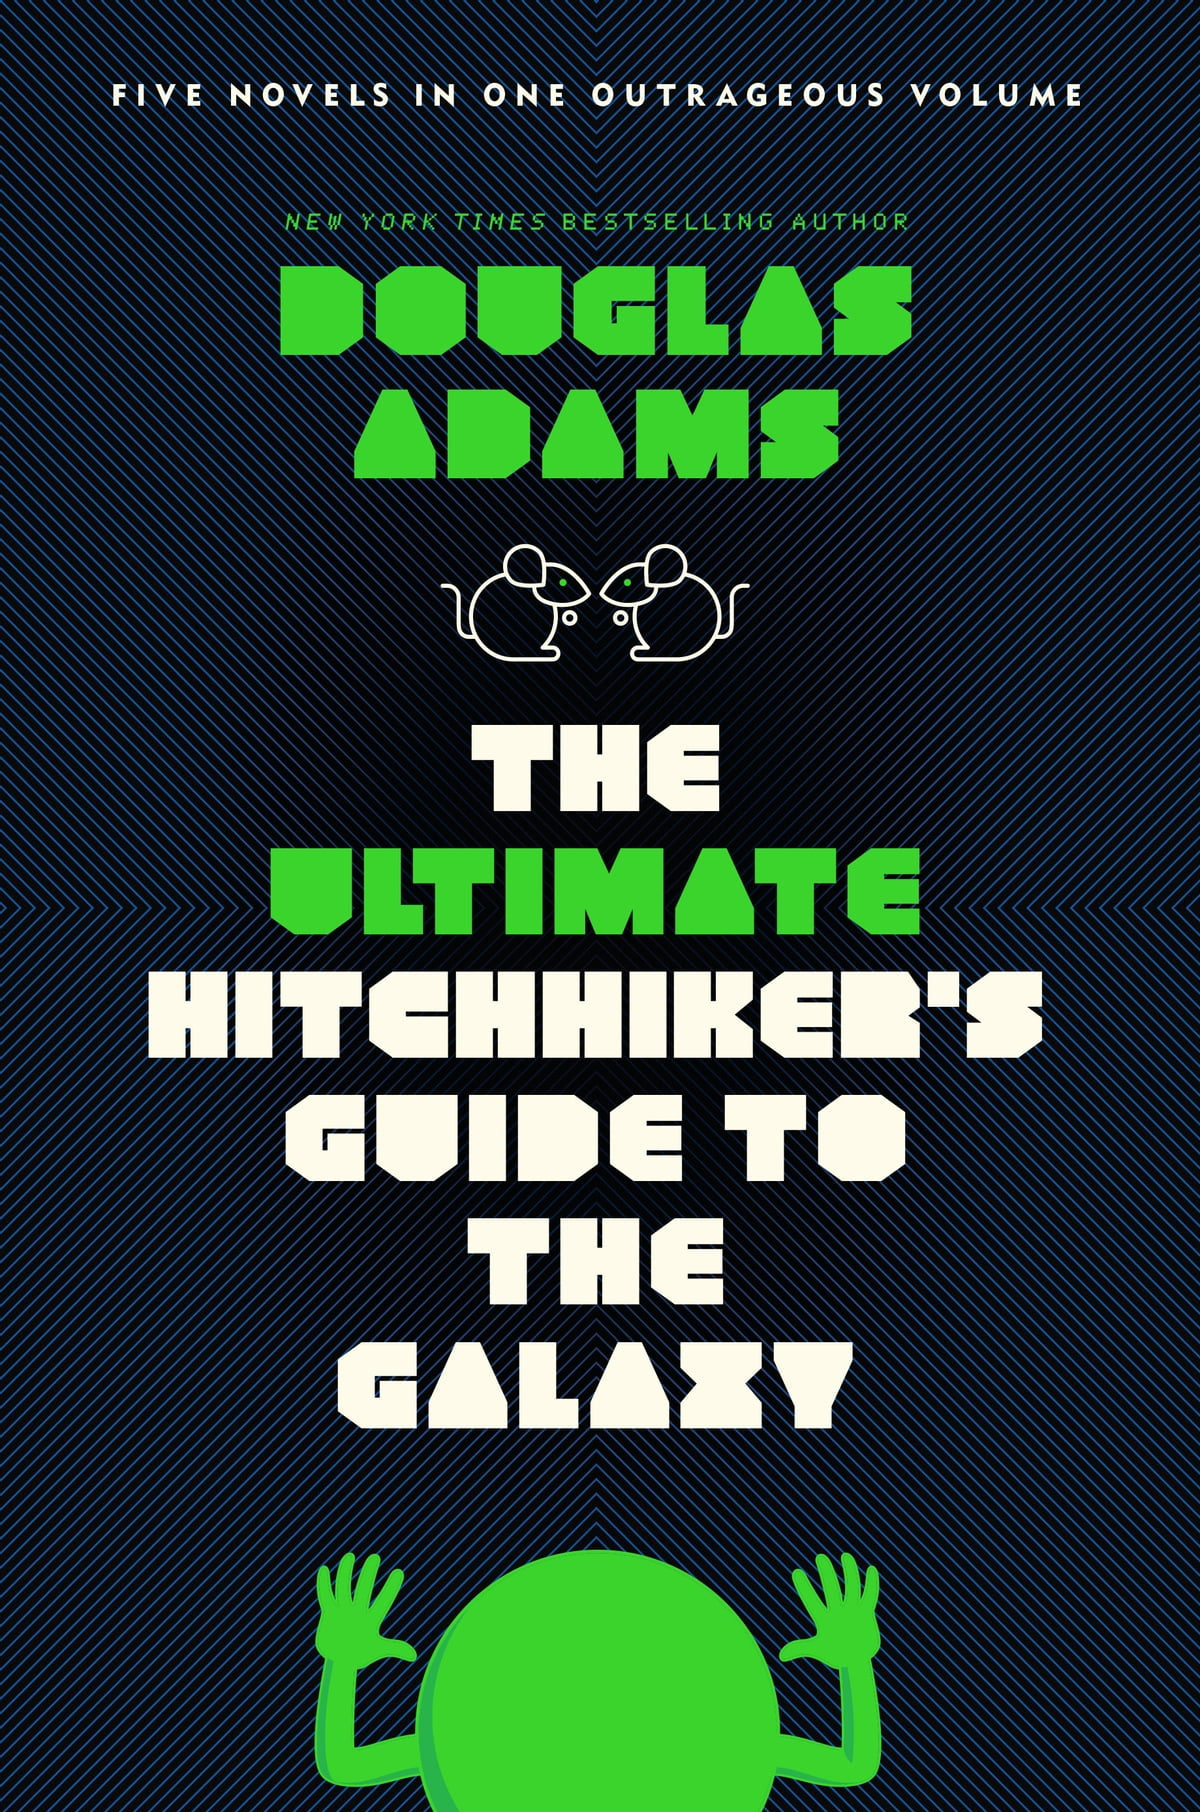 The Ultimate Hitchhiker's Guide to the Galaxy eBook by Douglas Adams -  9780307498465 | Rakuten Kobo